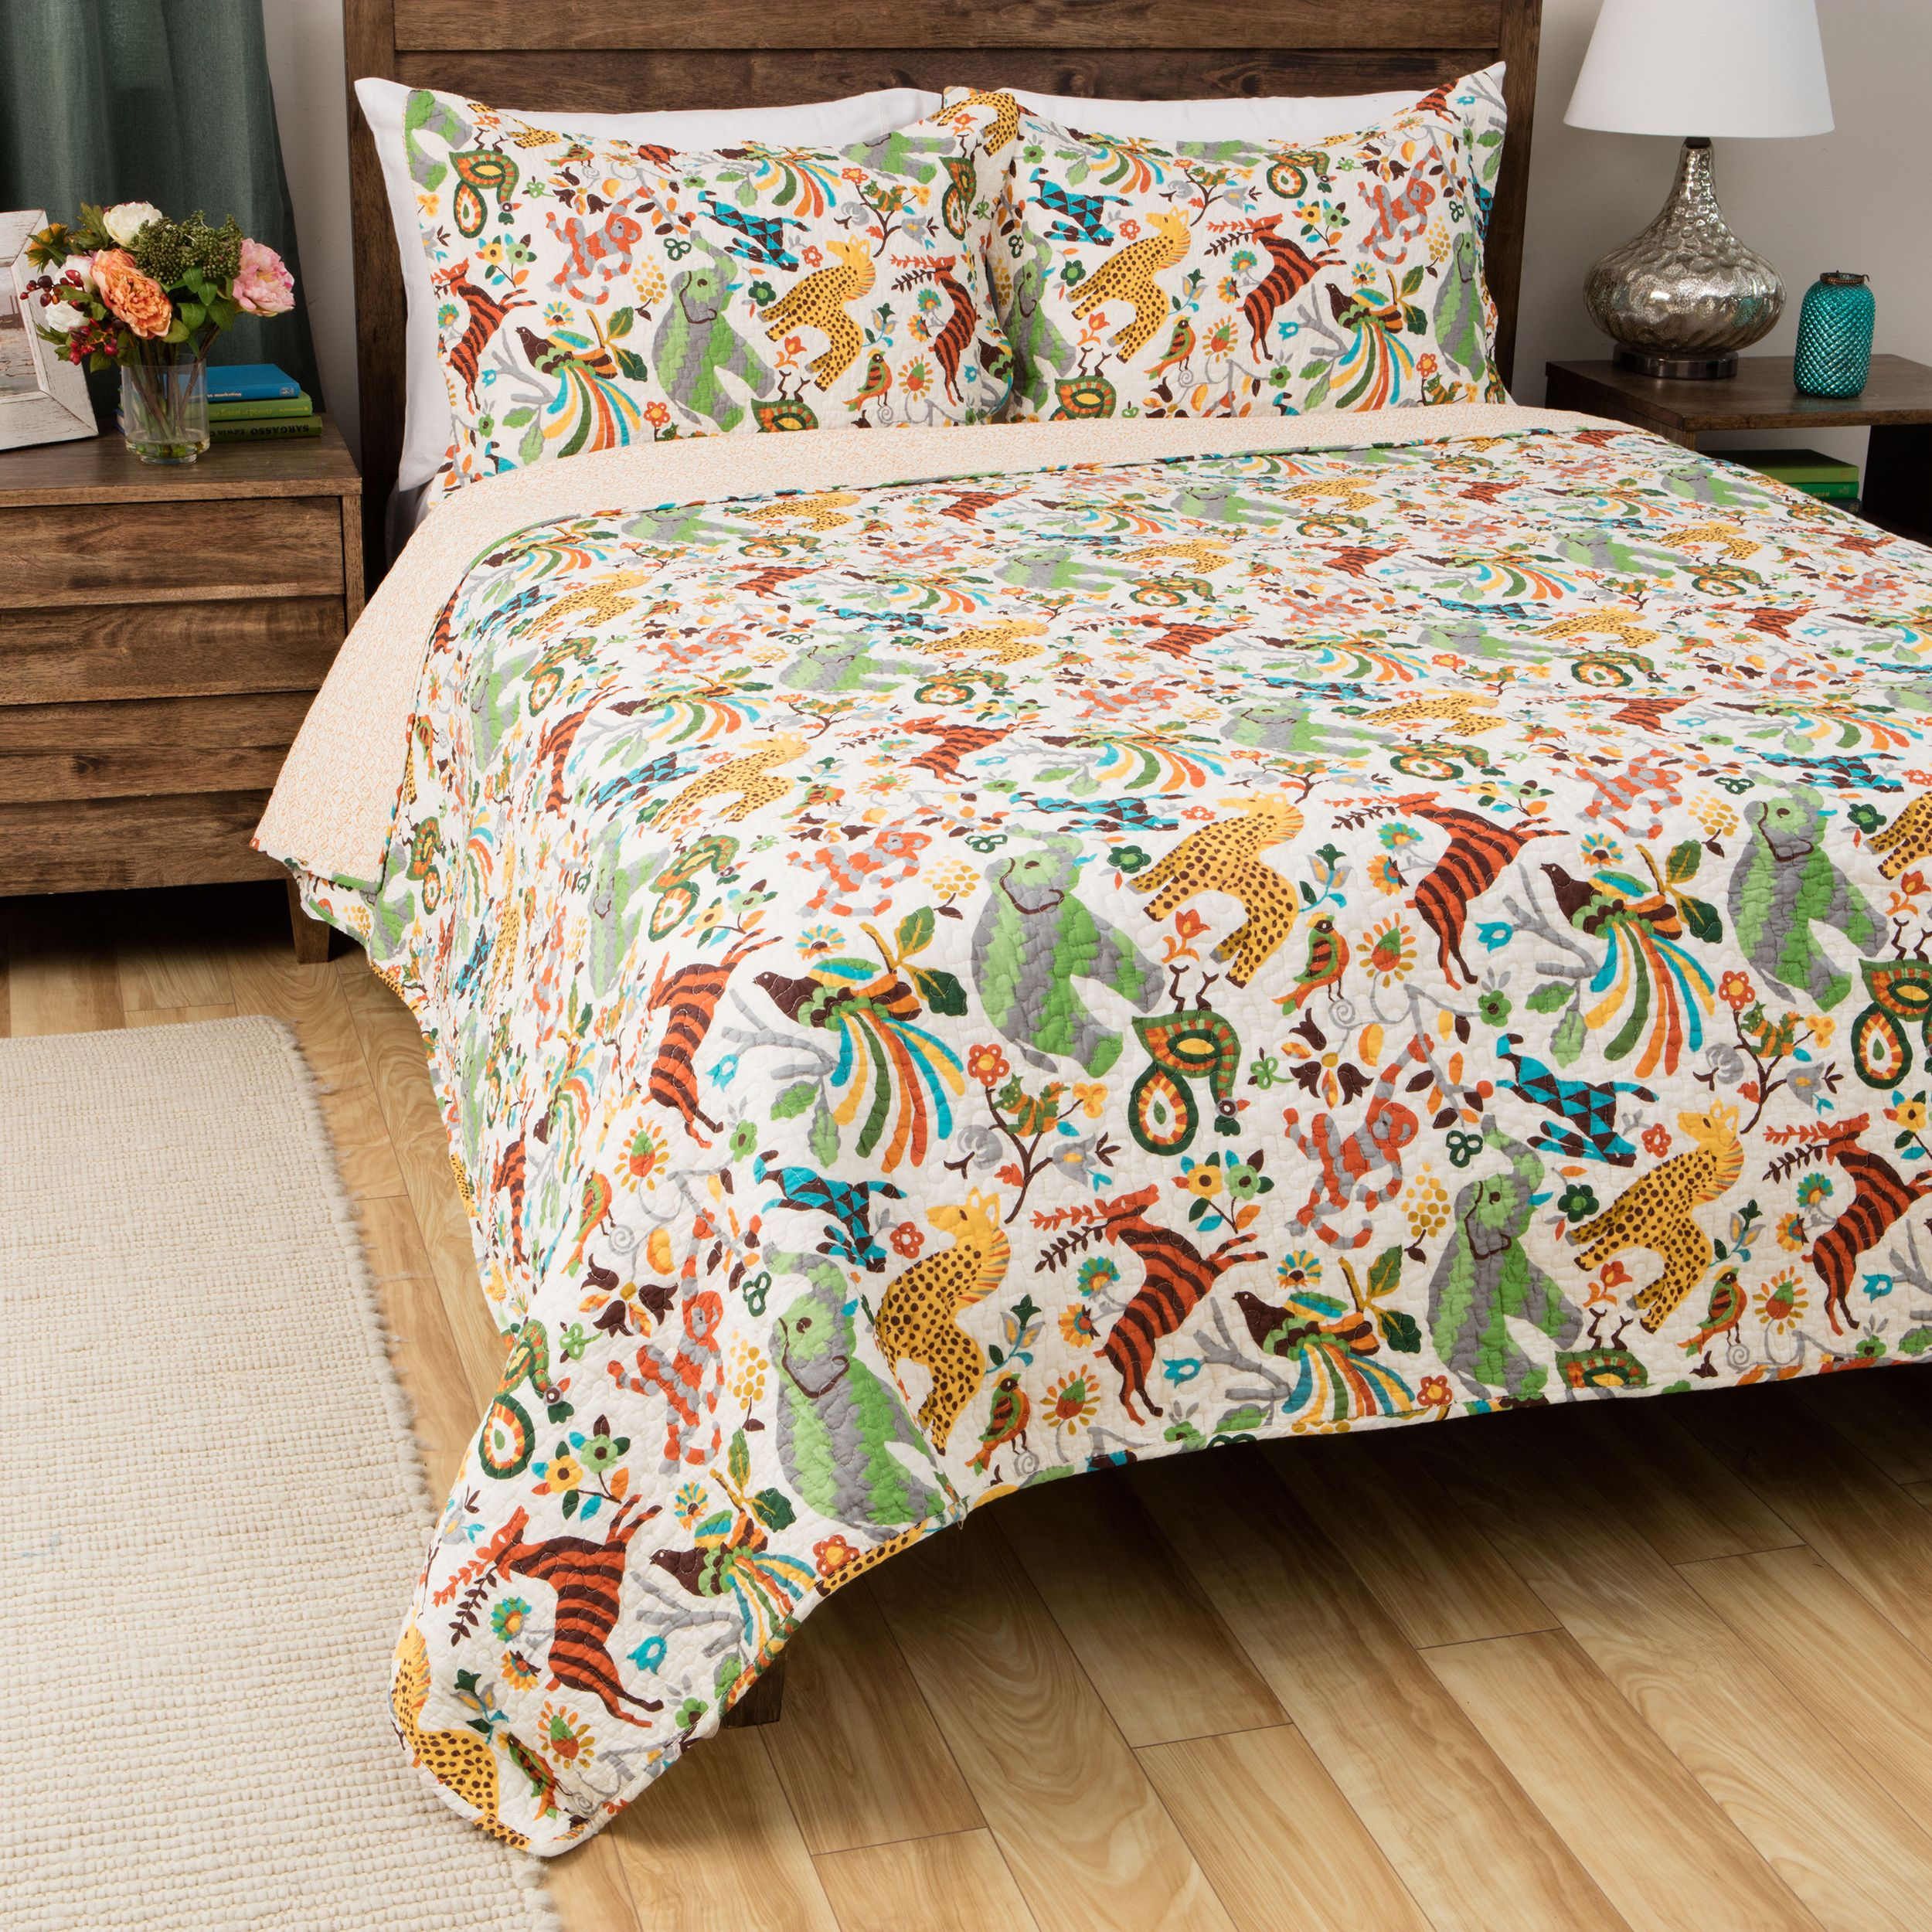 fabulous modern stunning night boy i table lamp queen attractive accessories combine and delightful bed room ideas with master quilts at decor quilt interiors boys inspiration showcasing teen size your classic colorful bedroom wooden bedding home impressive for design